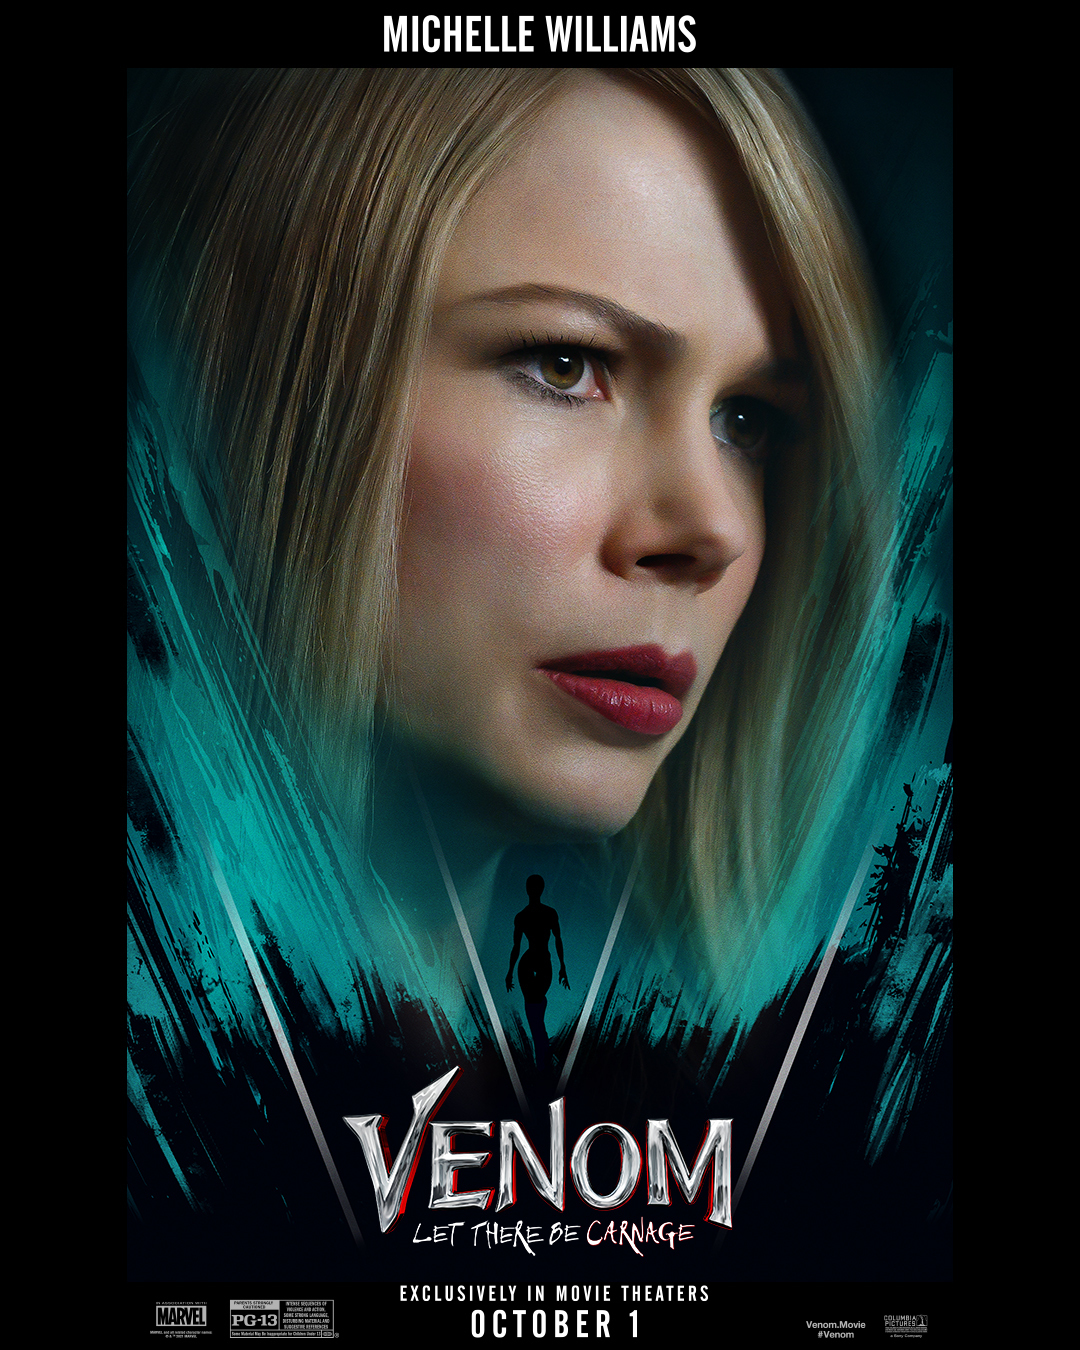 Anne Weying (Michelle Williams) en póster de Venom: Let There Be Carnage (2021). Imagen: Sony Pictures Twitter (@SonyPictures).